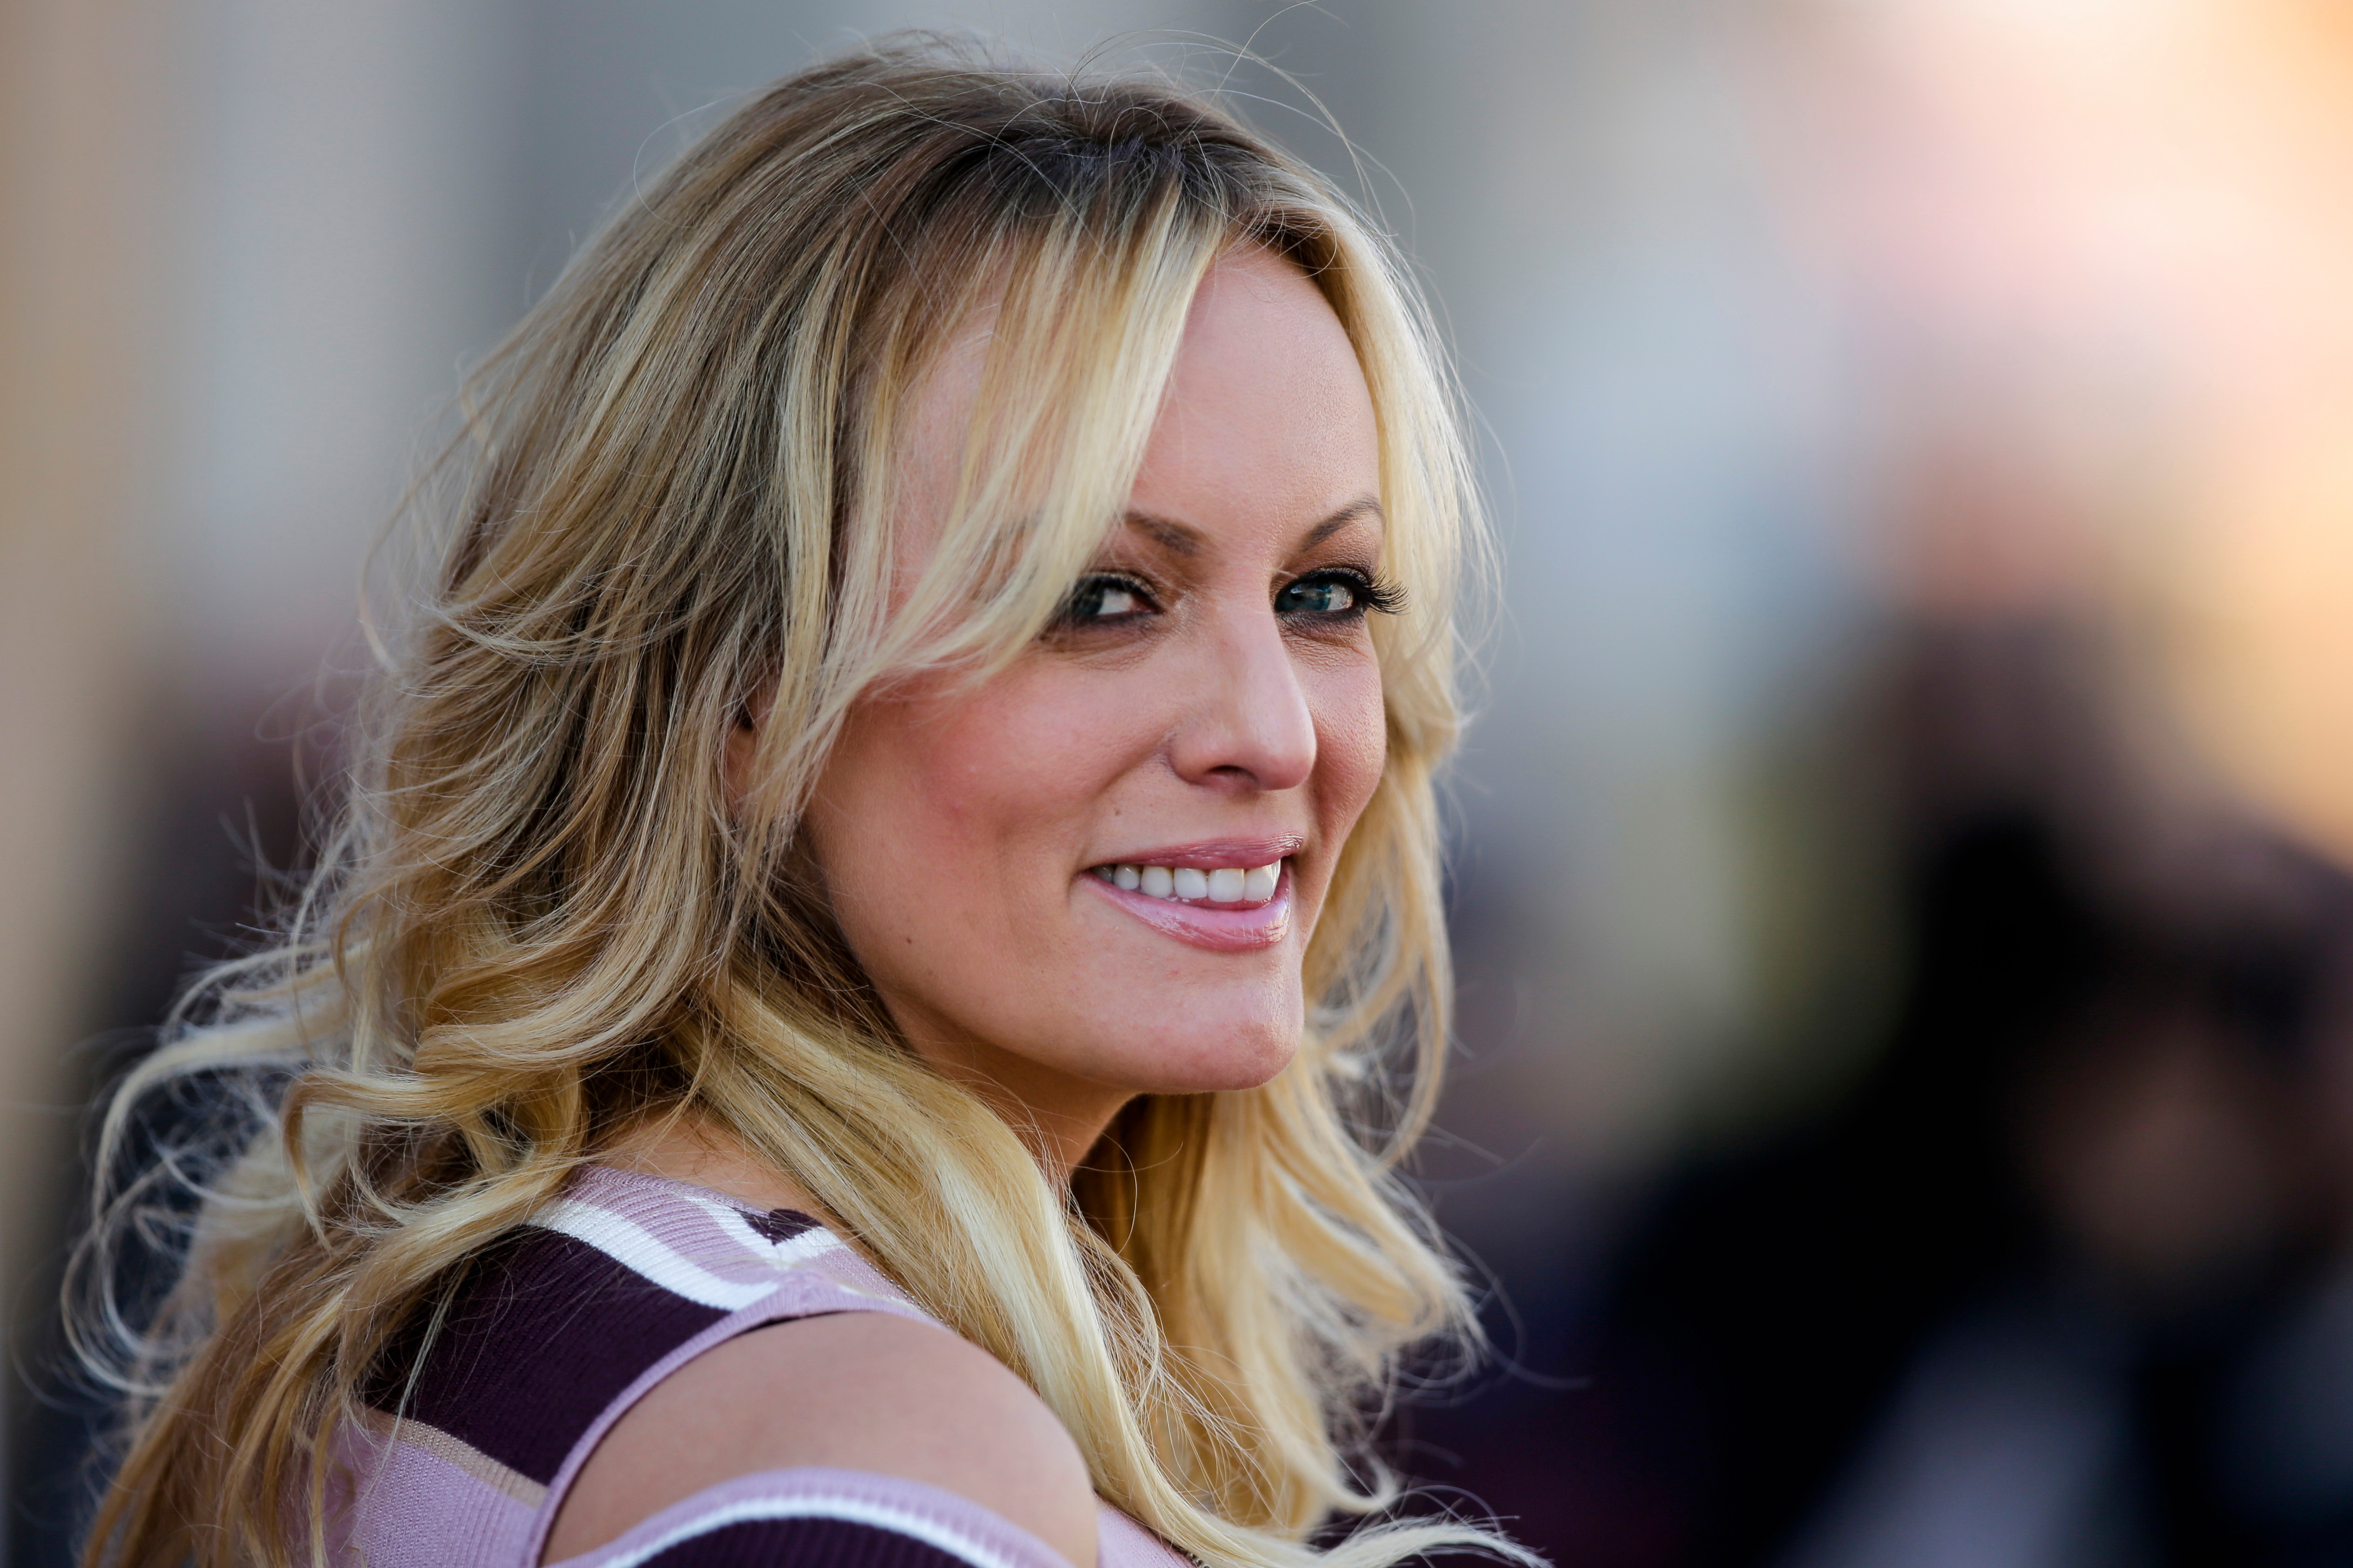 Stormy Daniels reveals she will be in next issue of Playboy